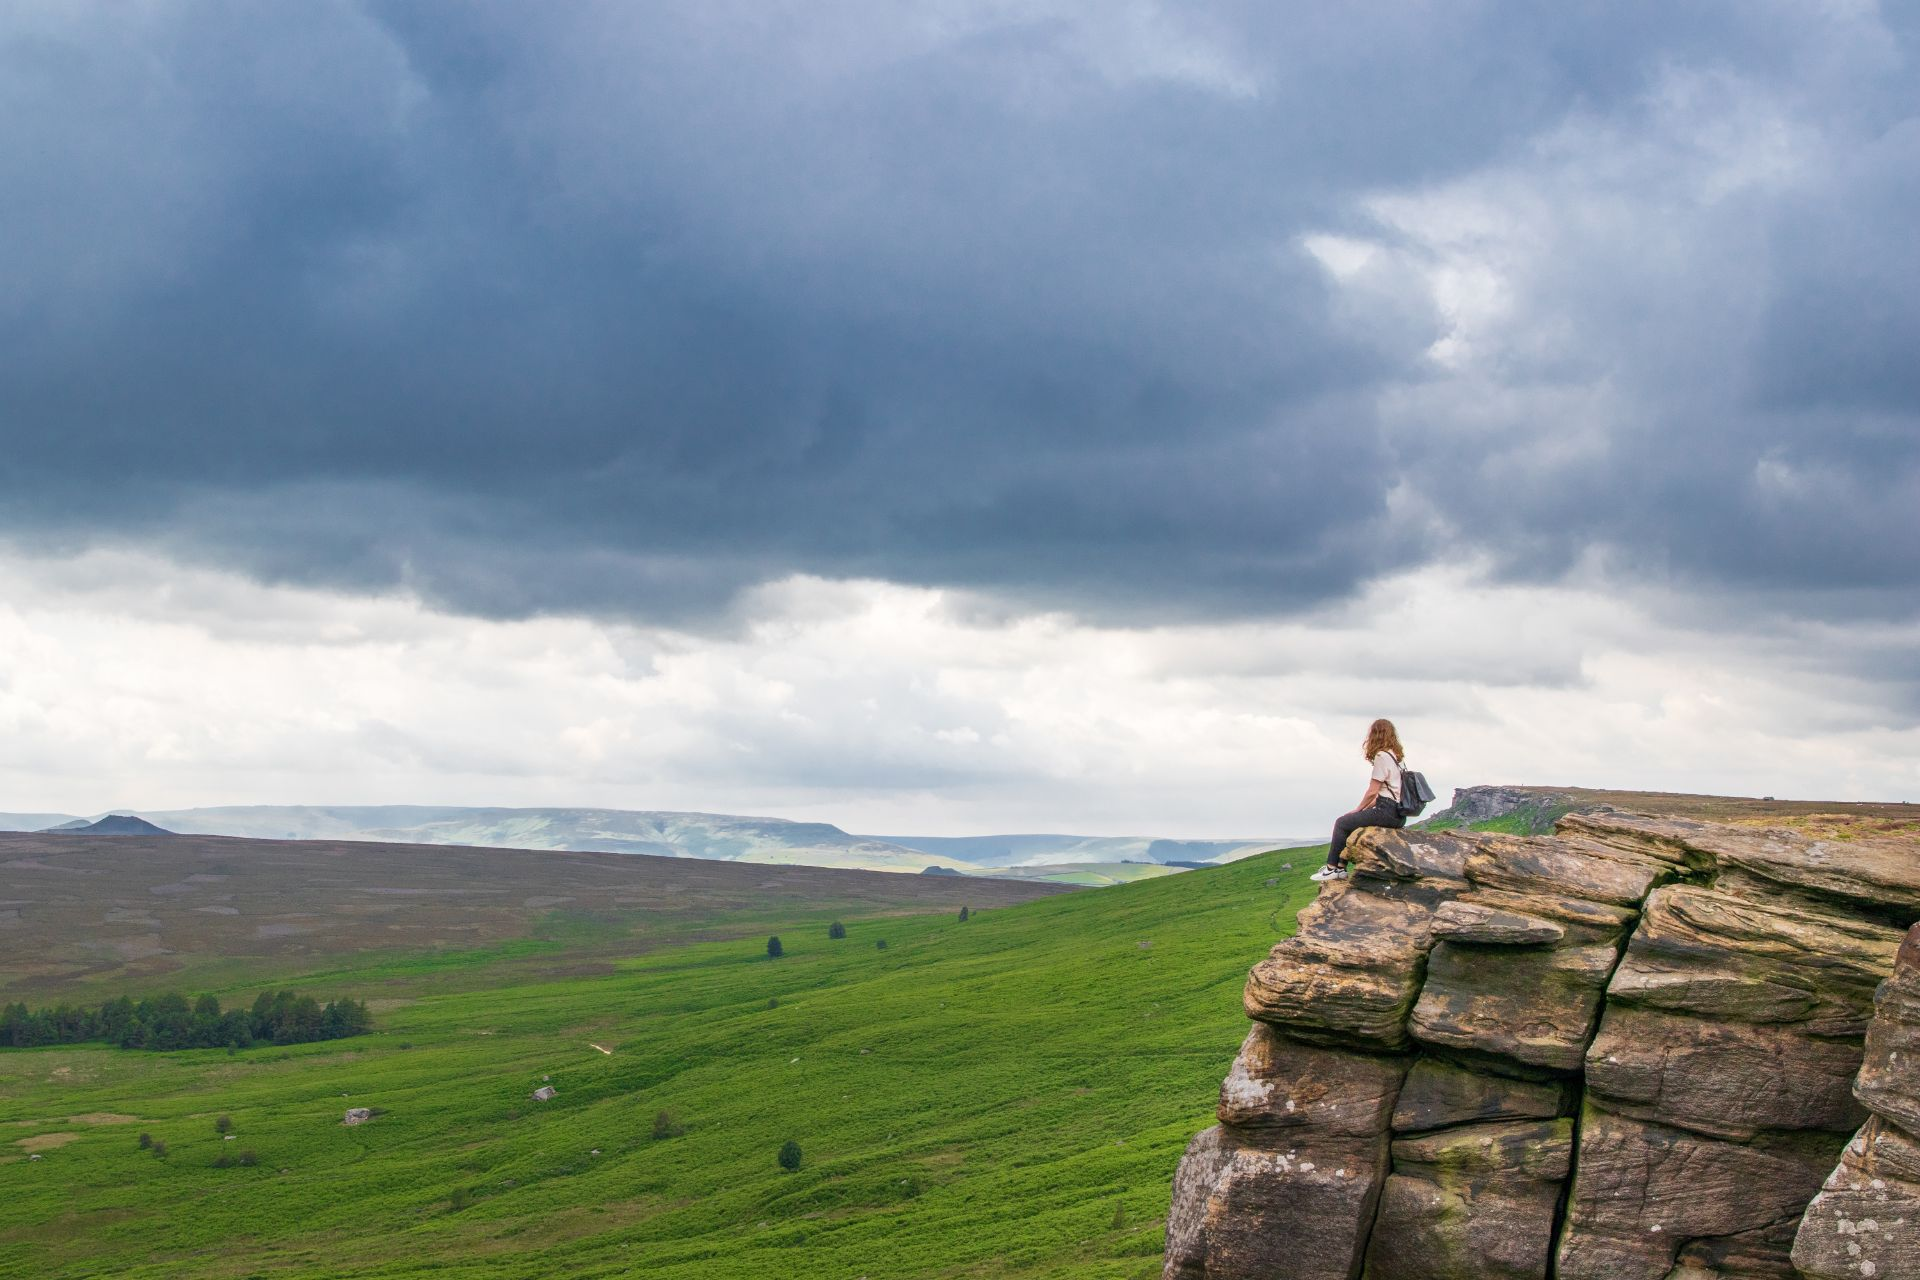 woman-wearing-backpack-sat-on-rock-cliff-face-overlooking-green-fields-and-hills-on-a-moody-cloudy-day-at-stanage-edge-in-the-peak-district